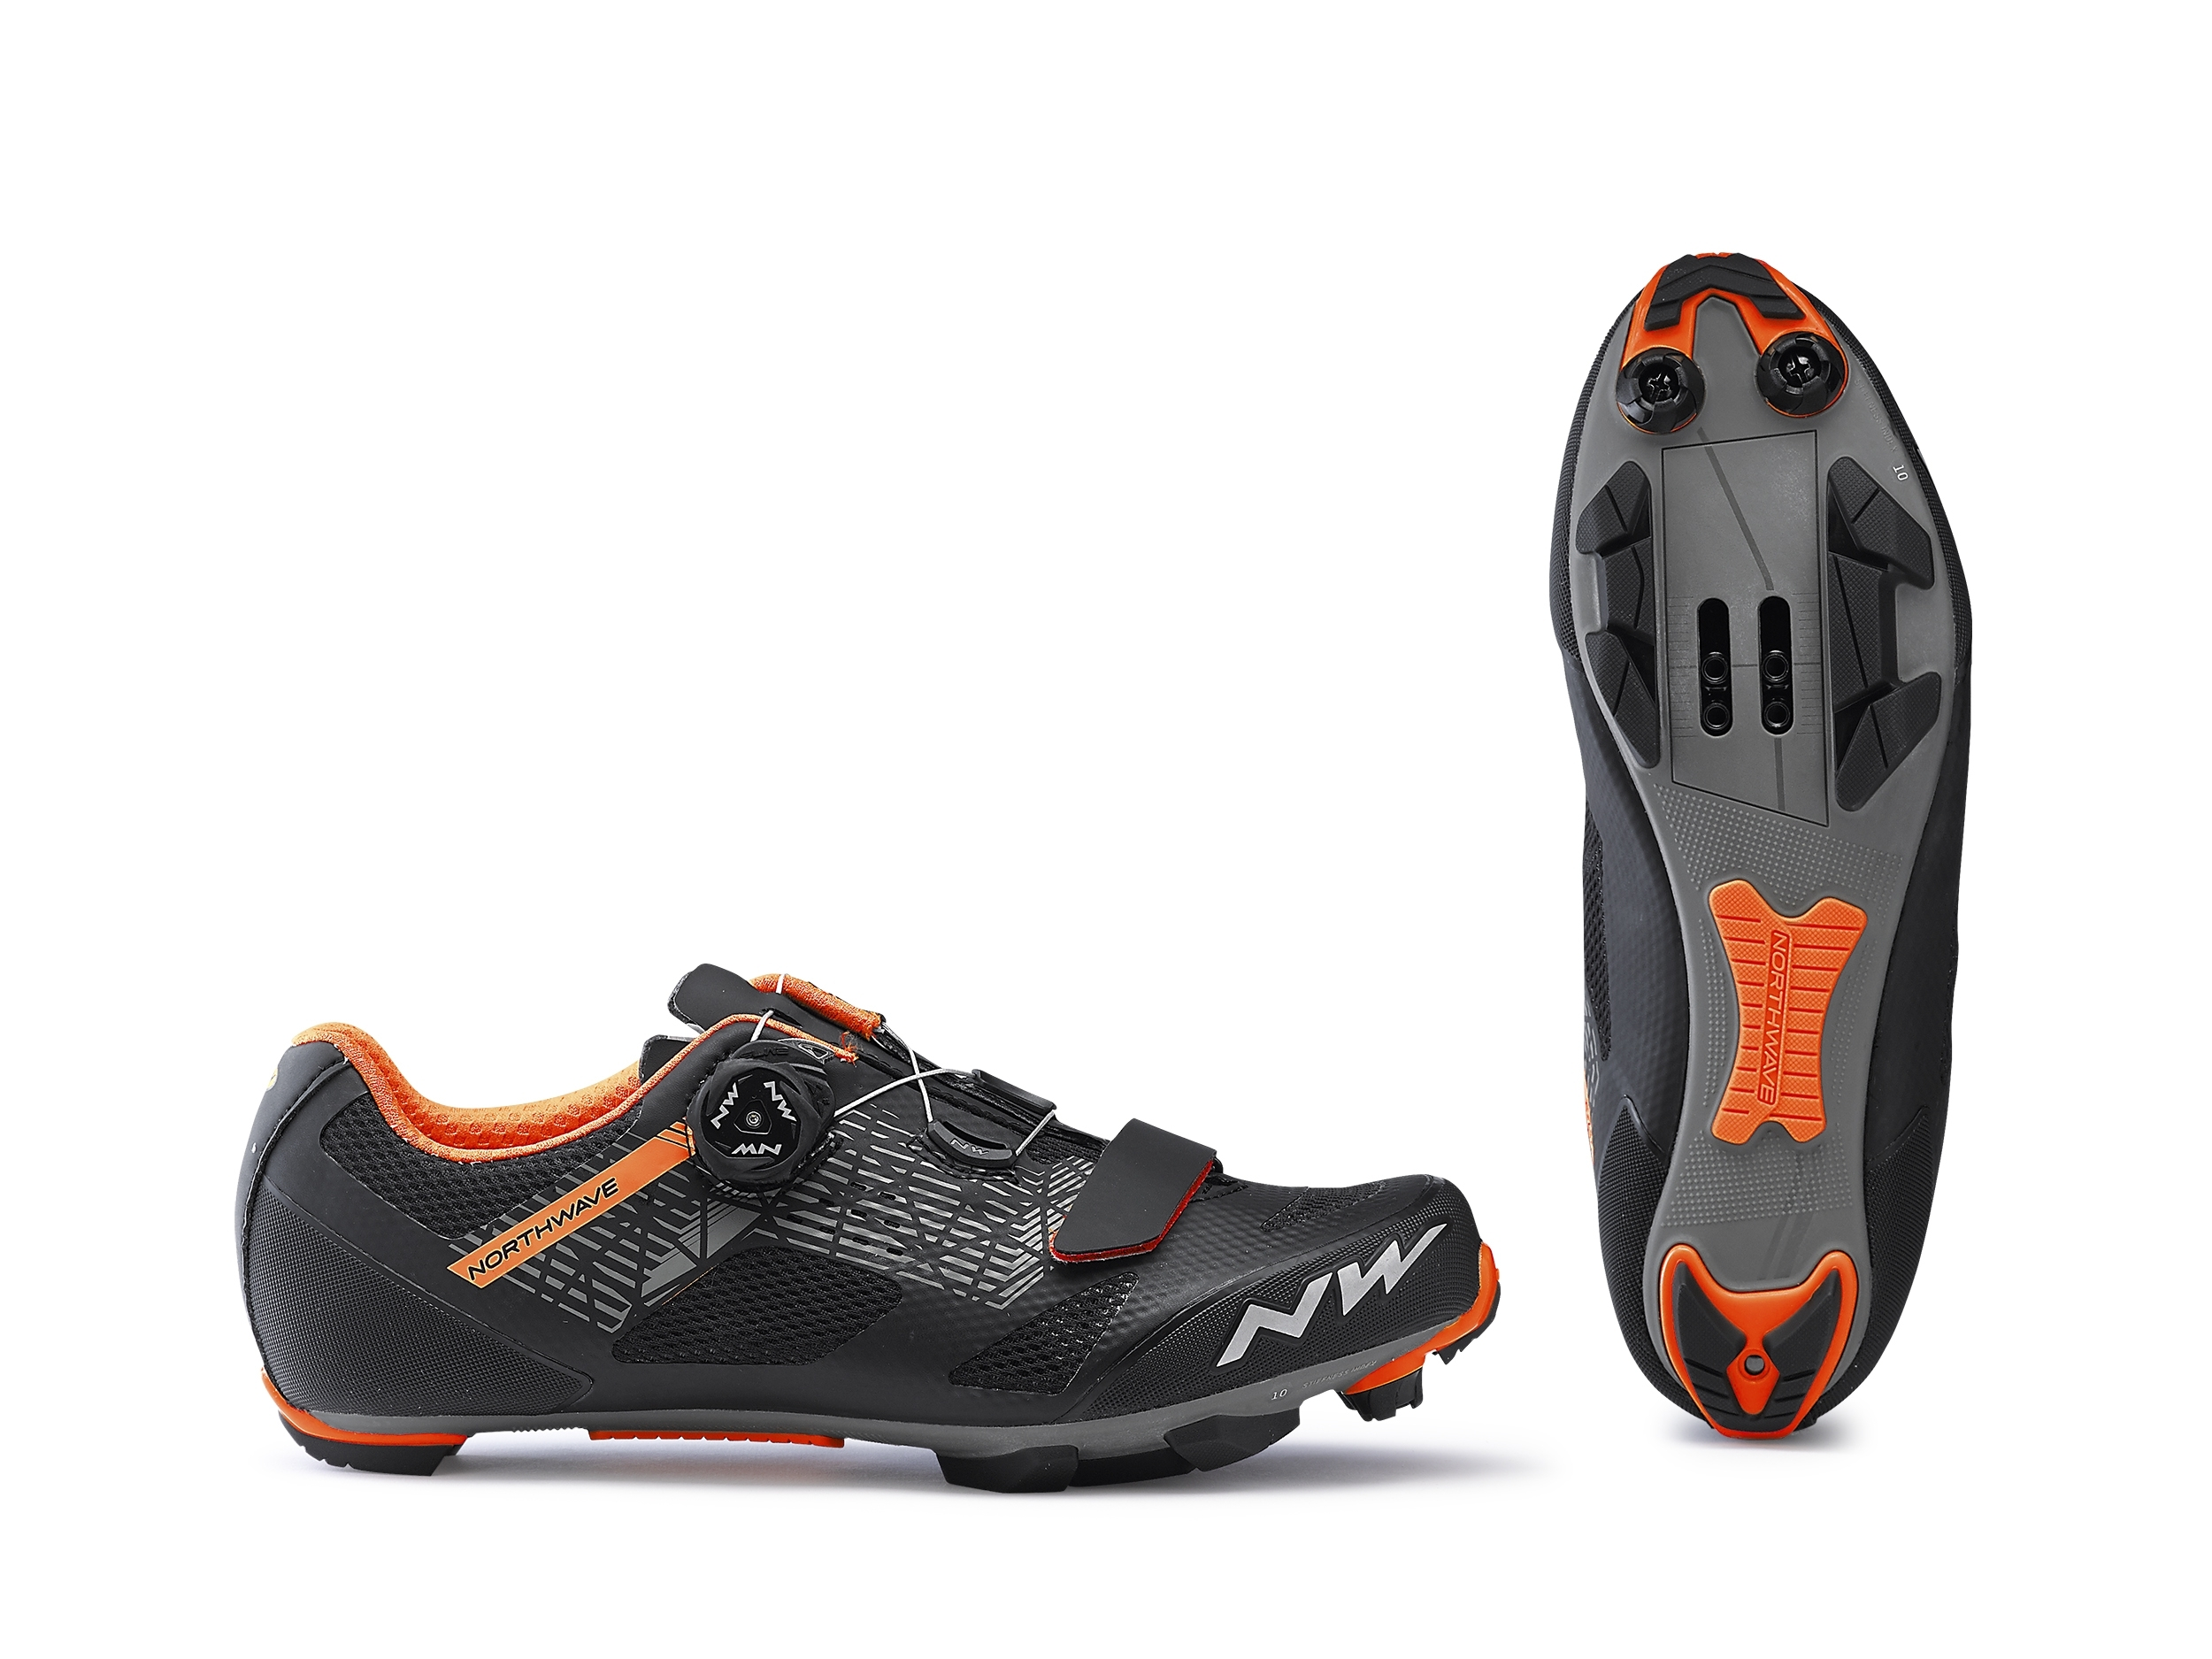 Best price Northwave BIke cross country shoes Male Razer